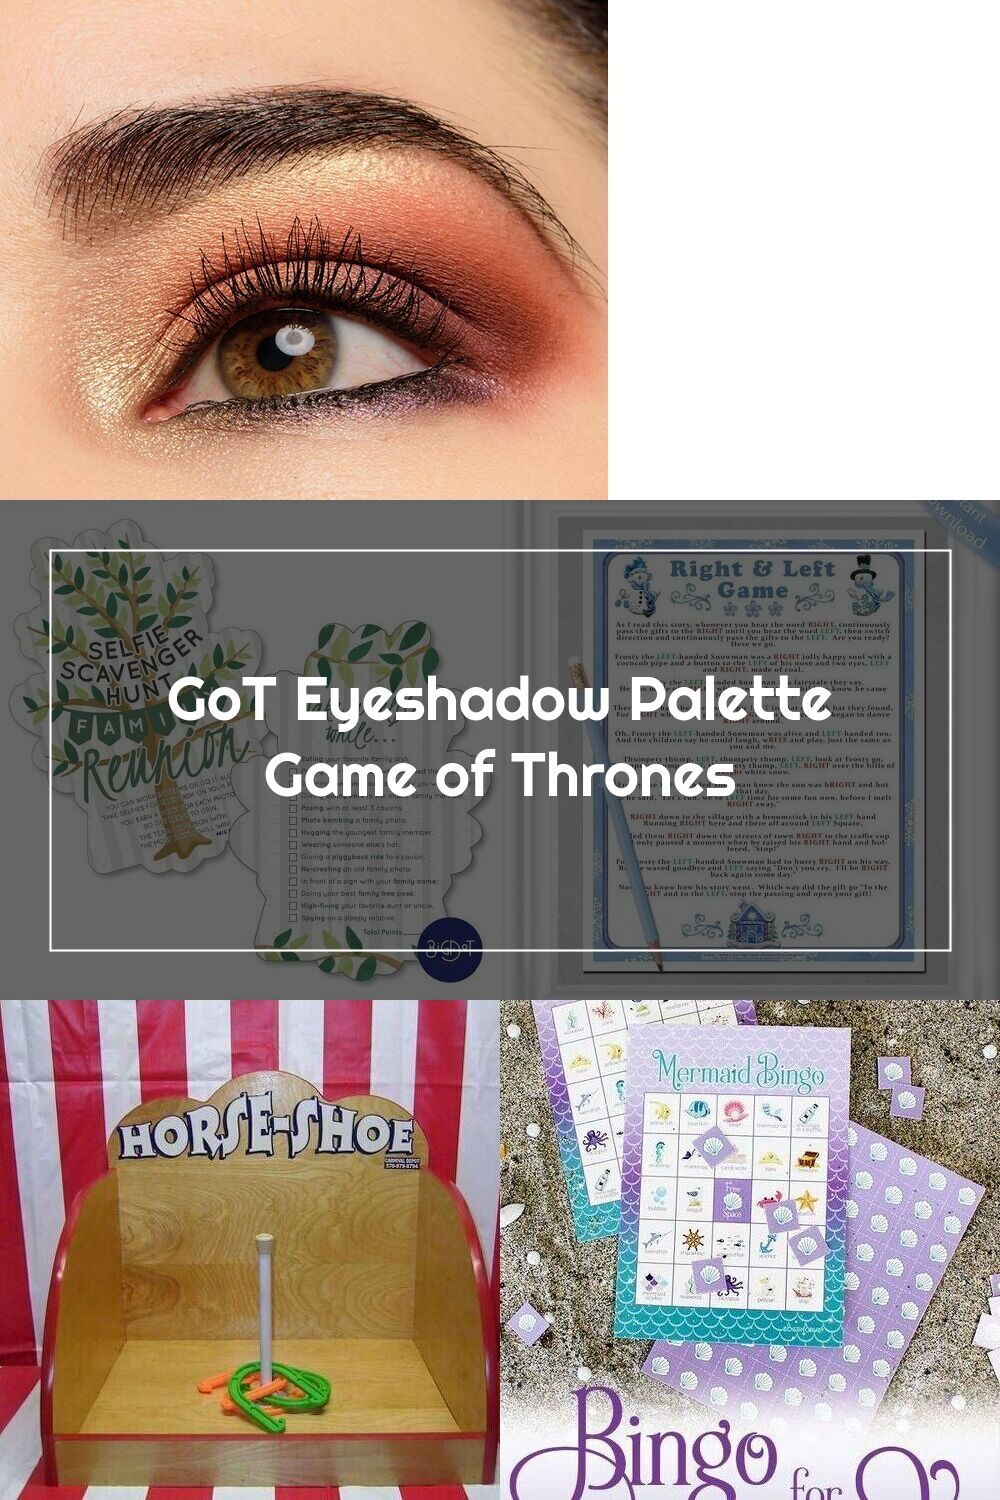 Urban Decay x Game of Thrones Eyeshadow Palette Review